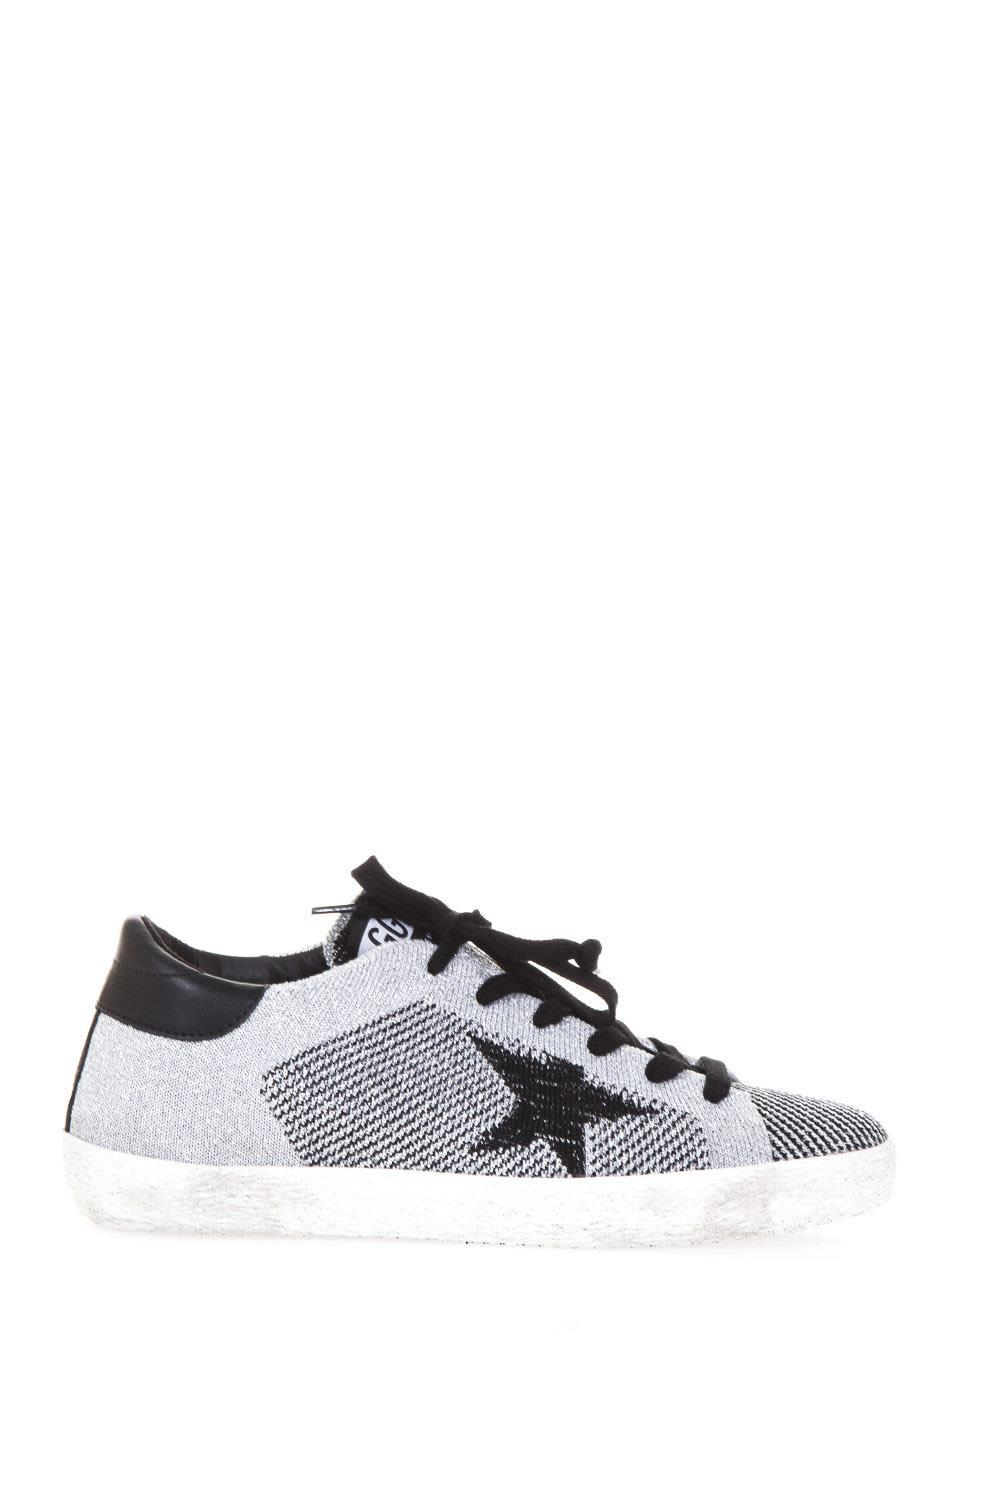 Golden Goose Superstar Knitted Glitter Sneakers In Silver Lurex Knitted